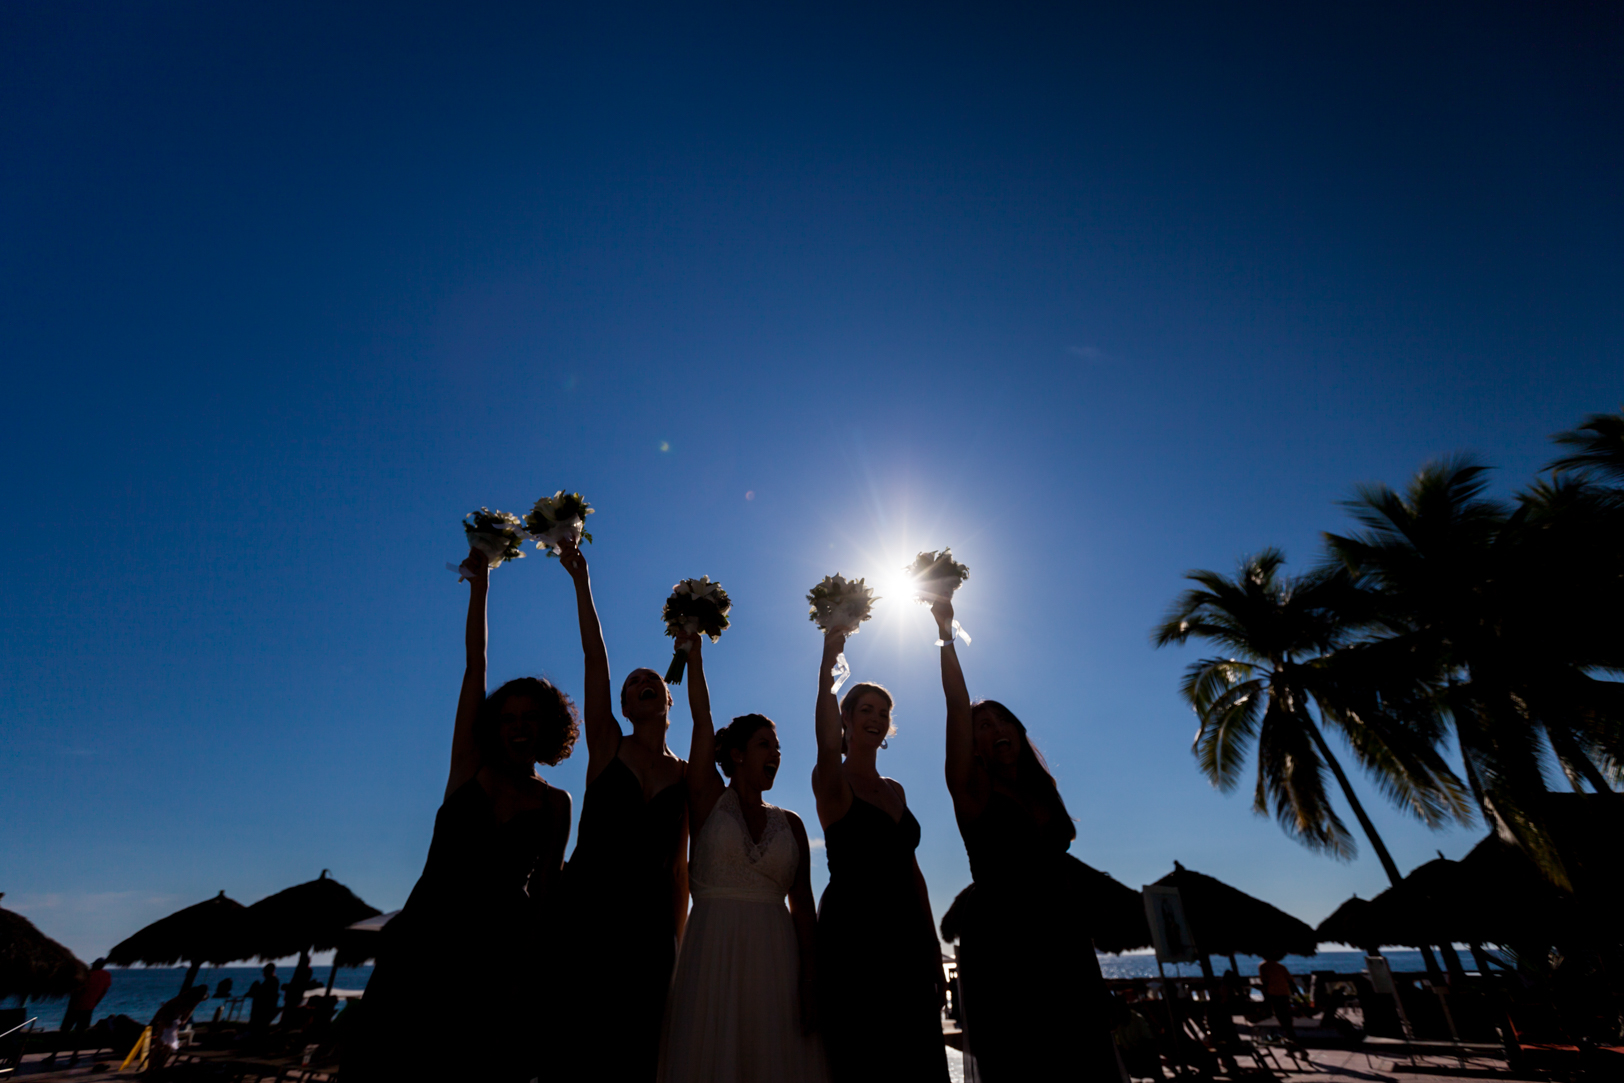 Bridesmaids picture at a Sunscape Dorado Pacifico Ixtapa destination wedding